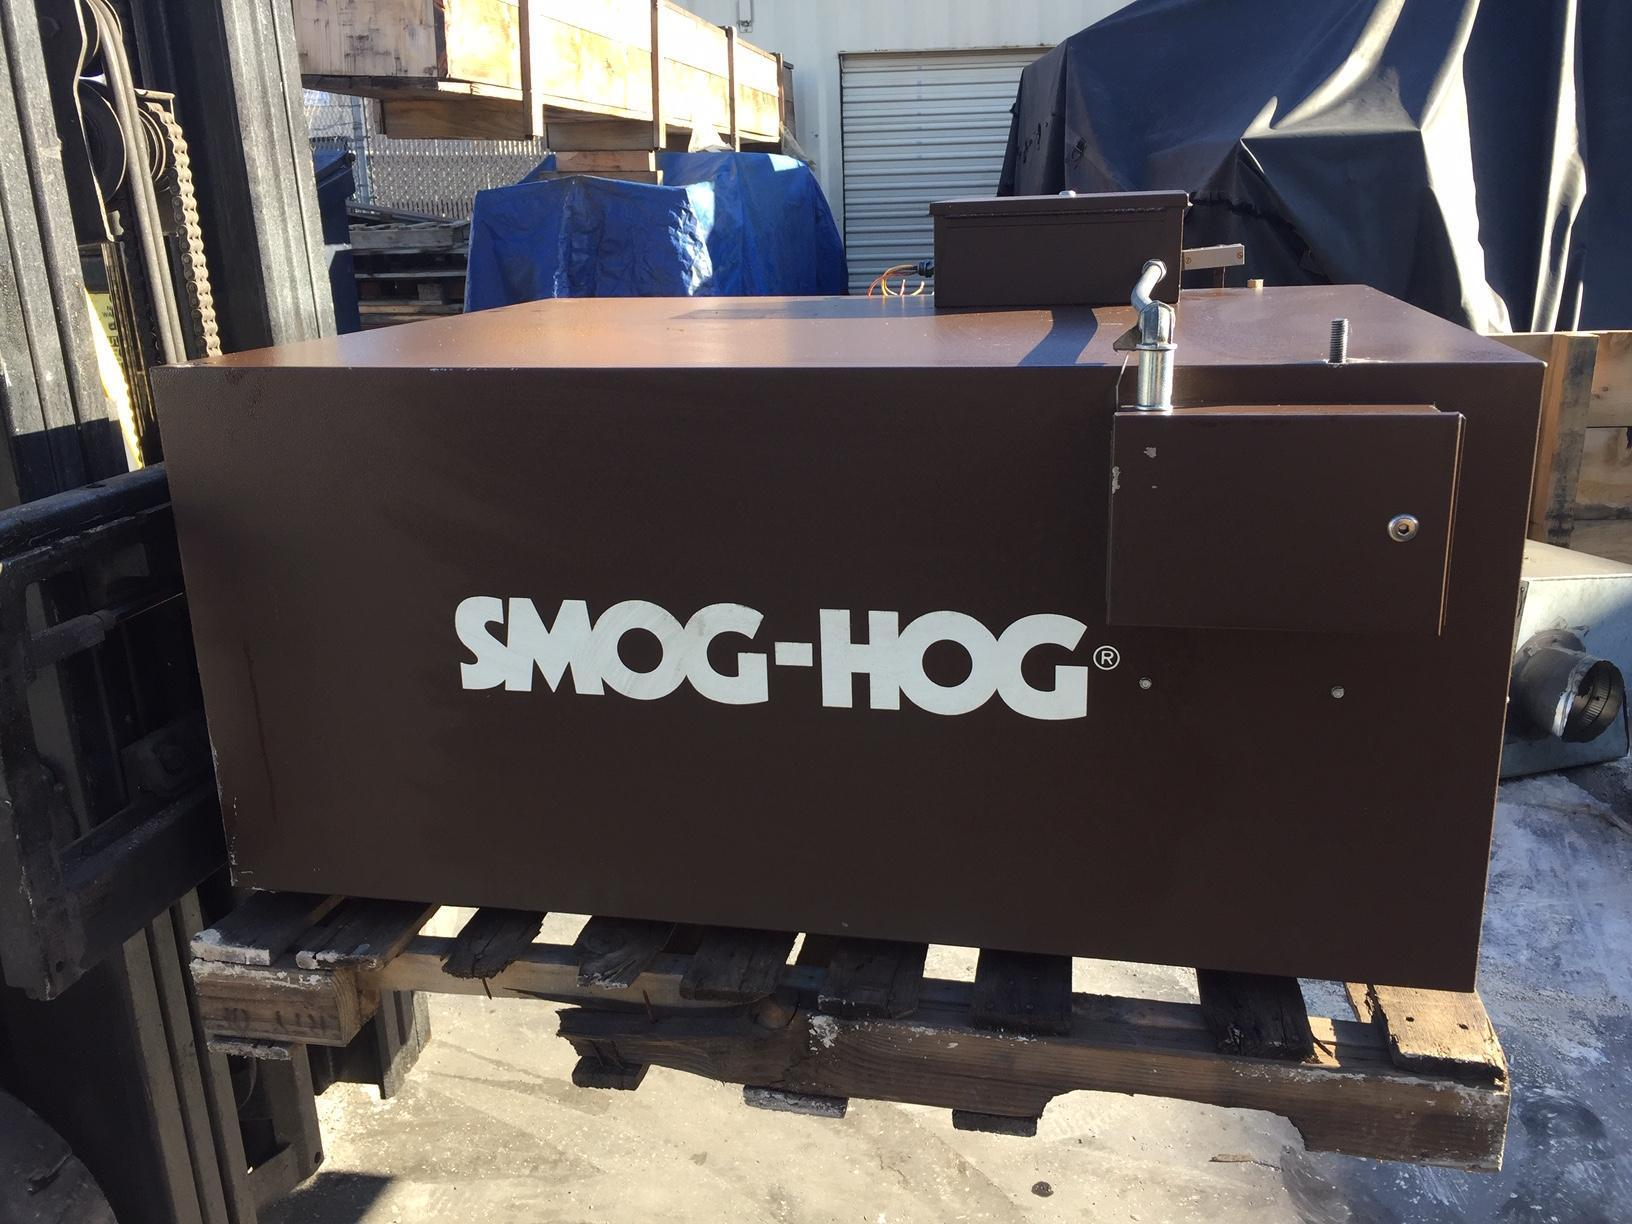 Smog-Hog SH-20-PE Oil Smoke and Mist Collector Air Cleaner.